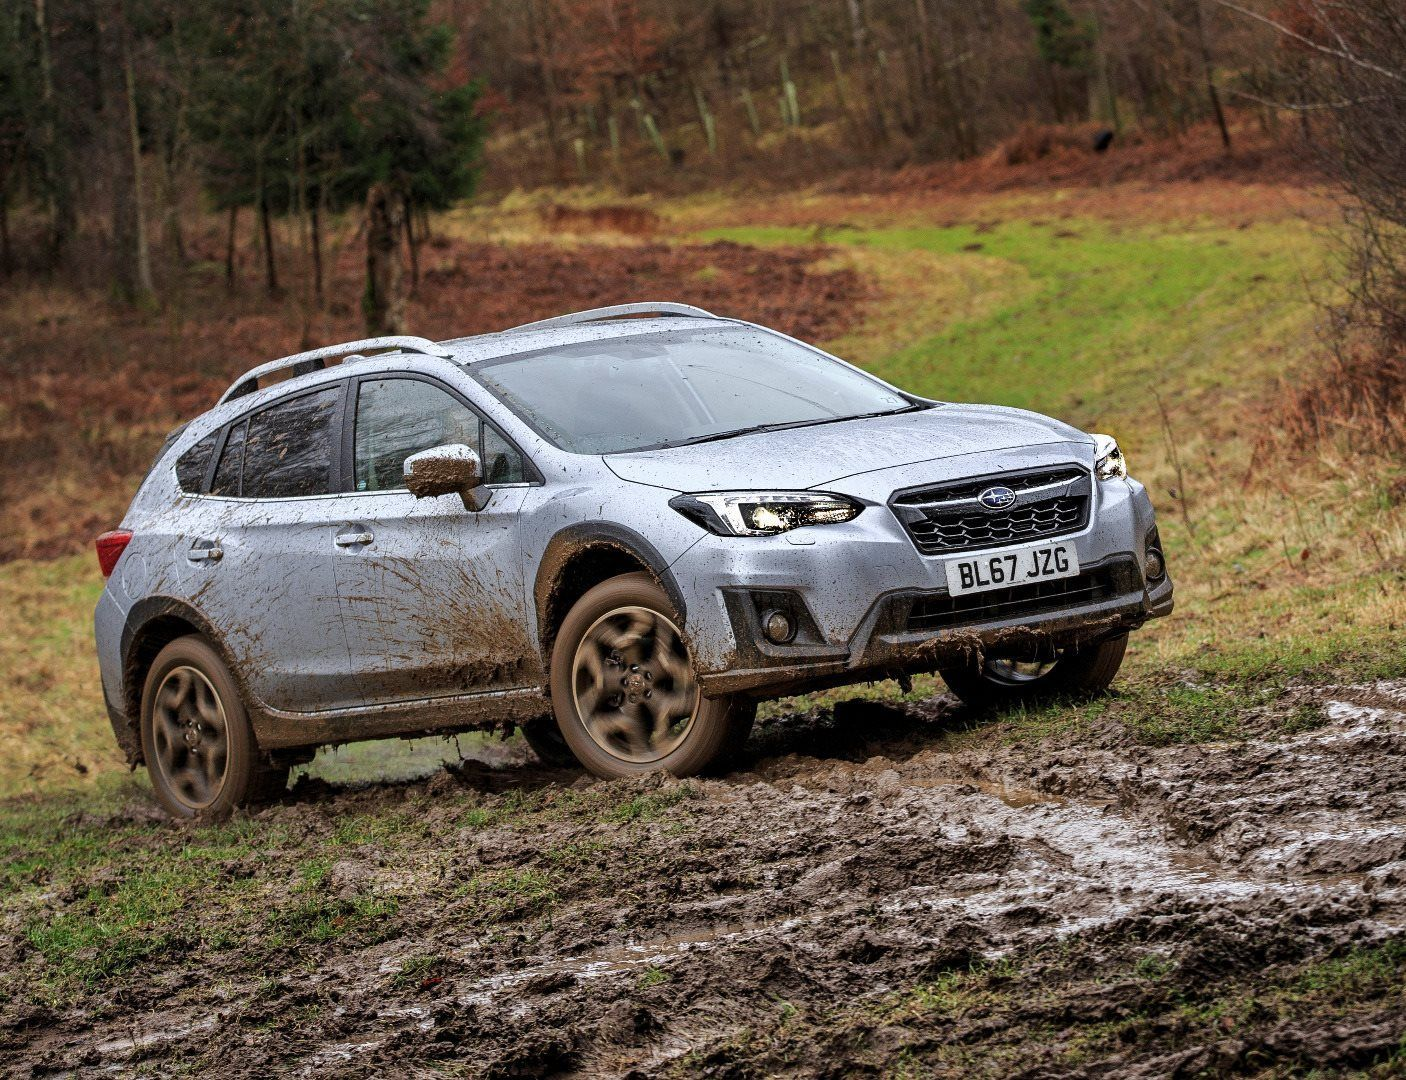 SUBARU OPENS ITS DOORS TO PROSPECTIVE FRANCHISEES THIS MAY